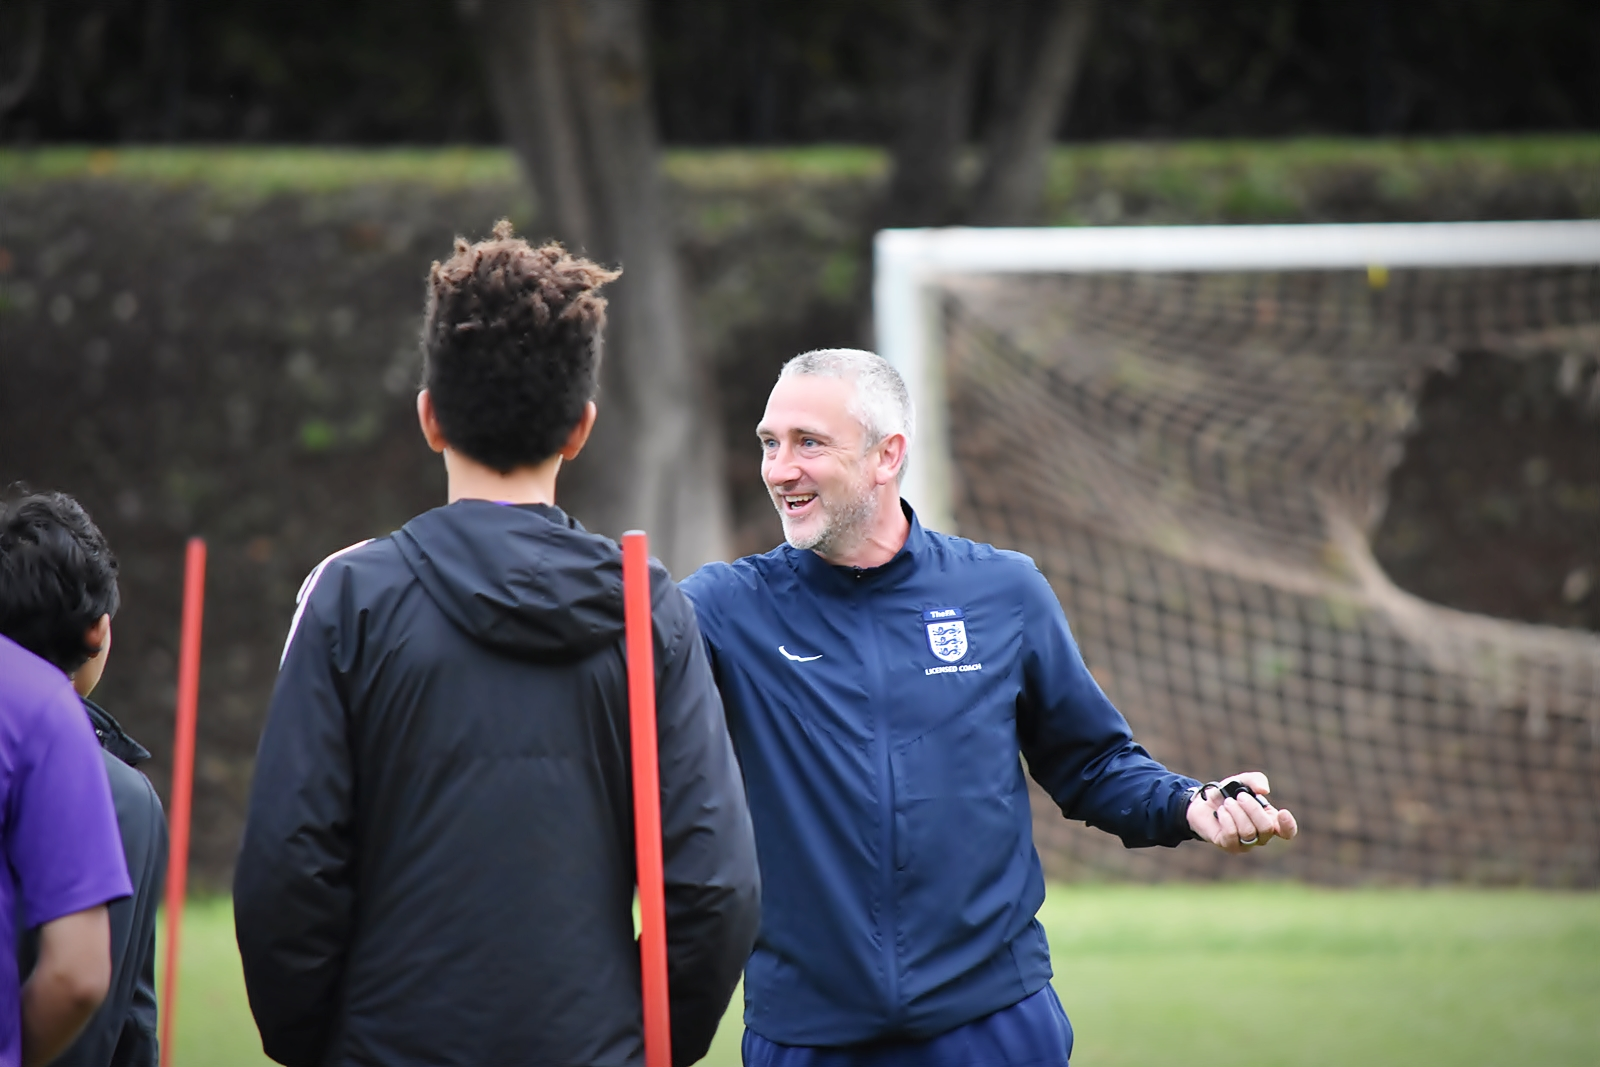 Specialty Clinic with Portland Timbers Coach, Sean McAauley